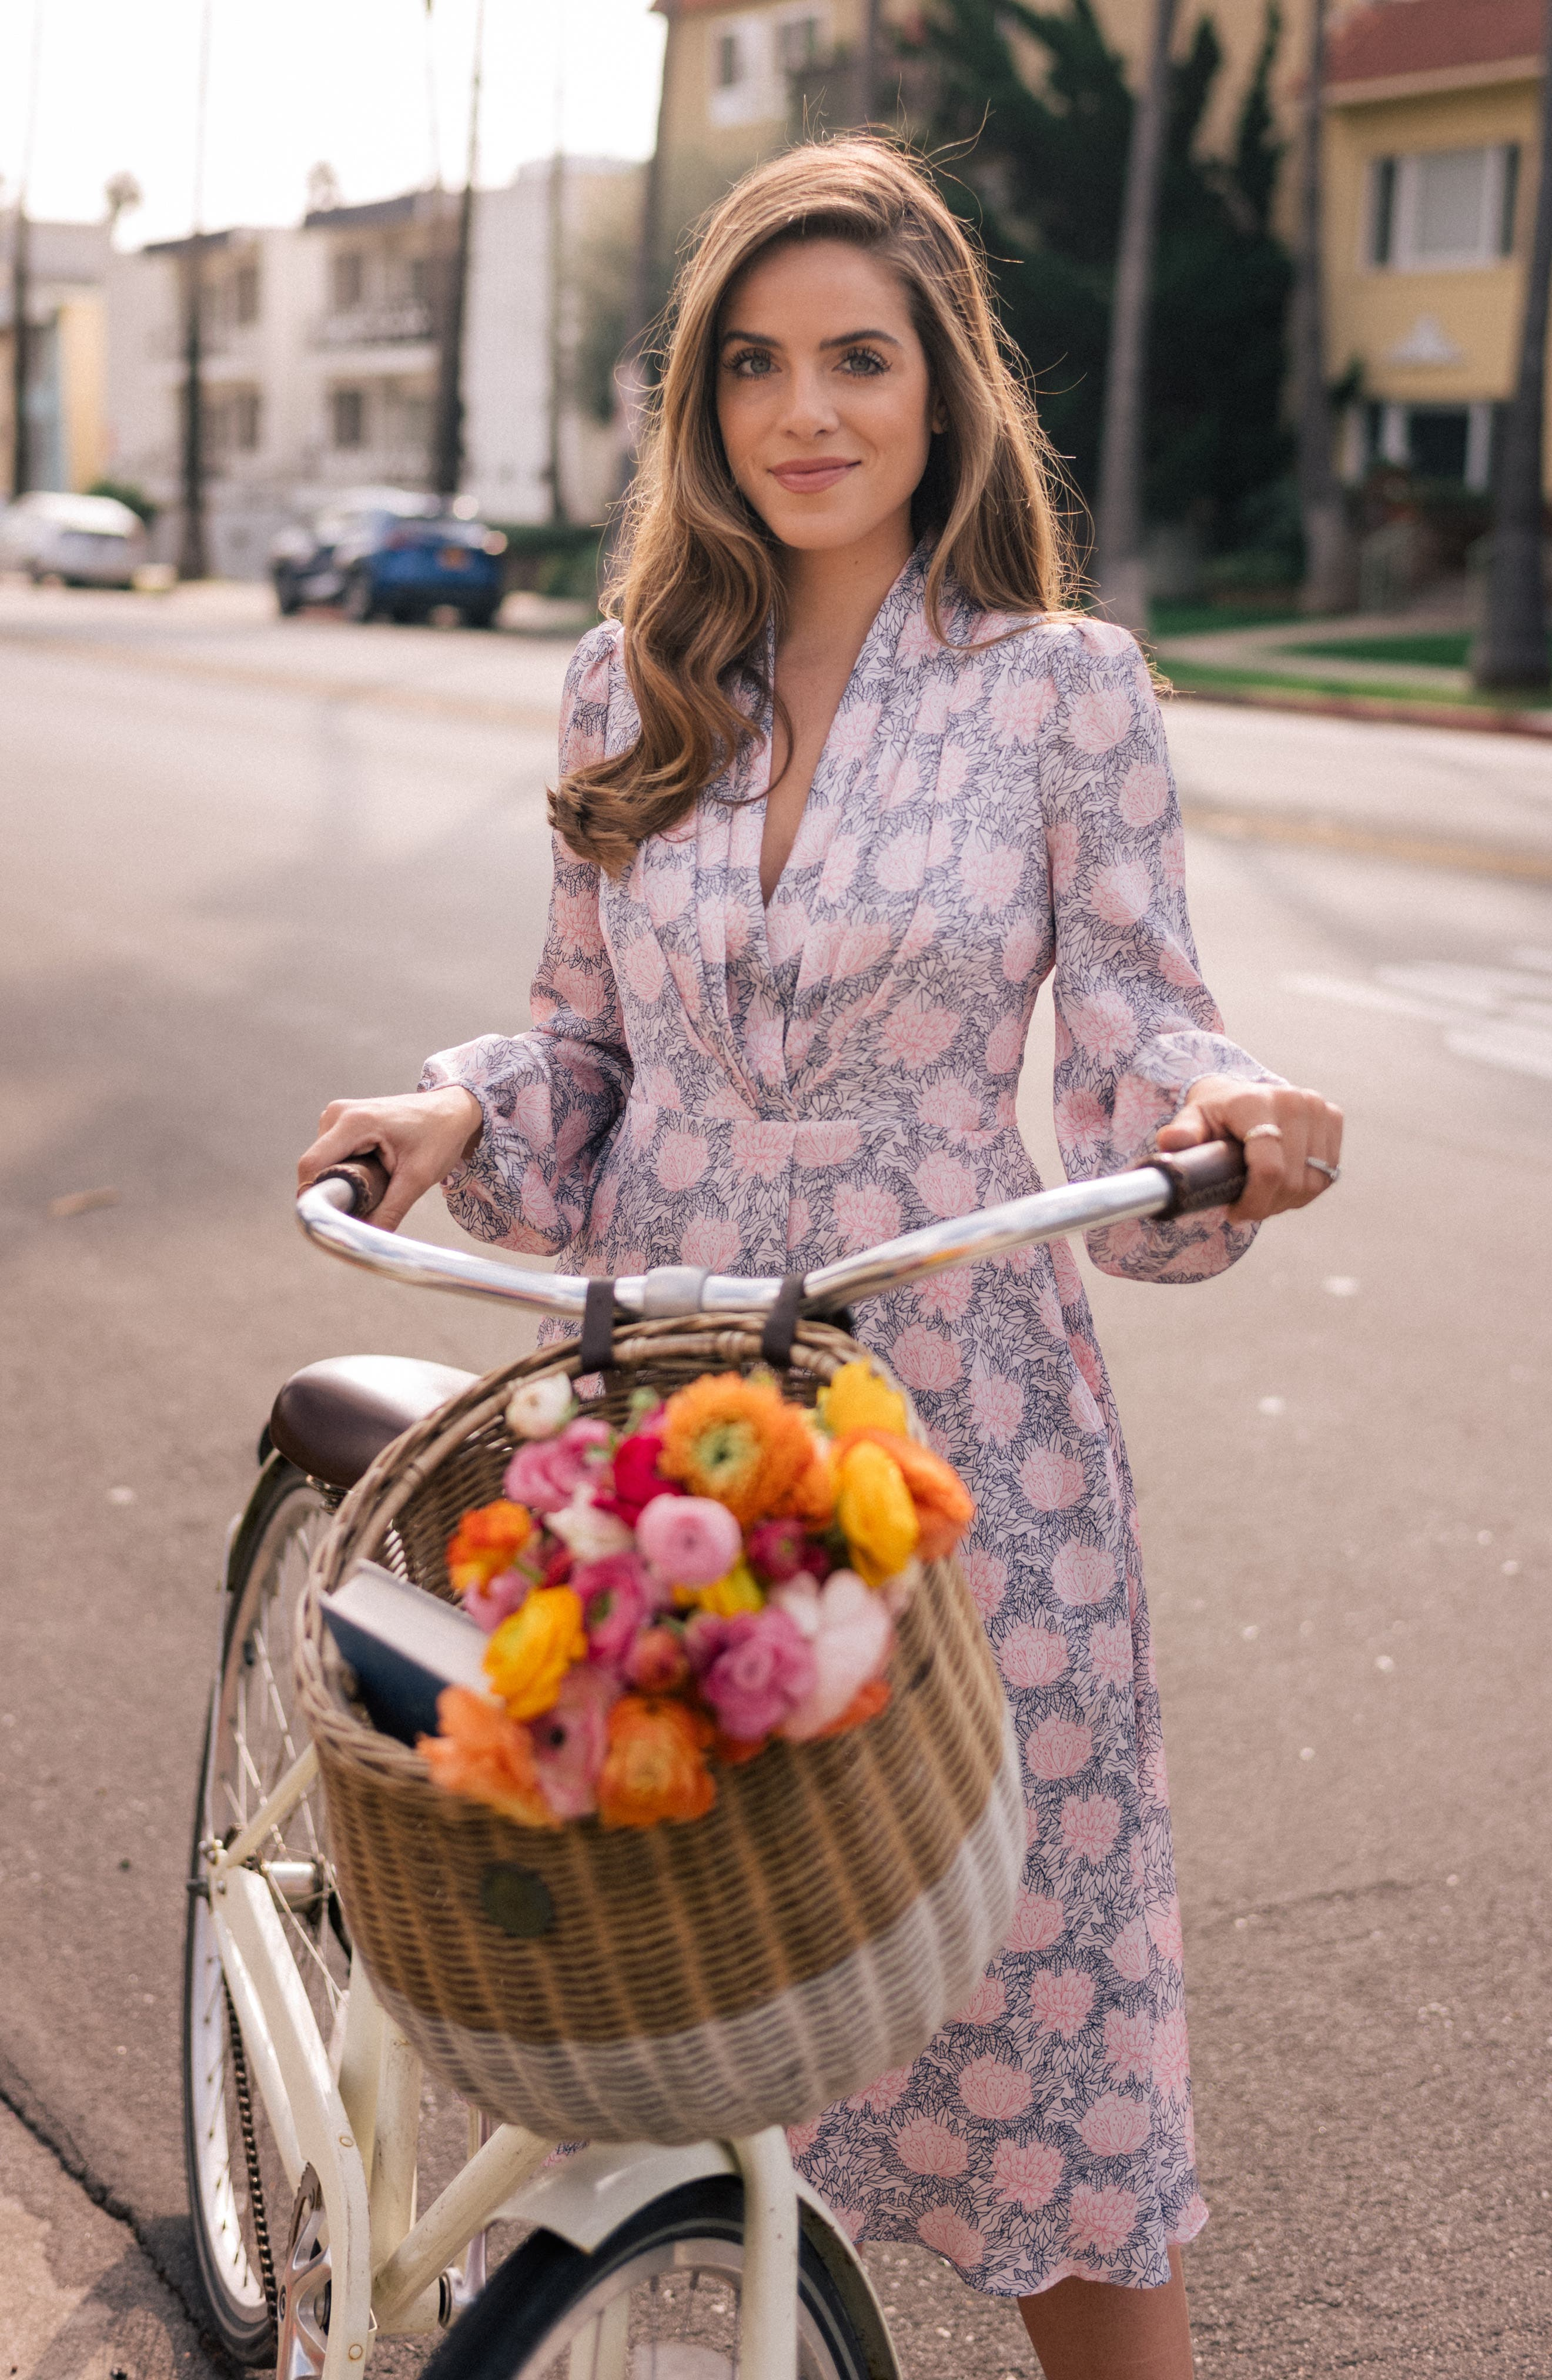 Lizzie Floral Dress,                             Alternate thumbnail 6, color,                             PINK/ UPTOWN PINK